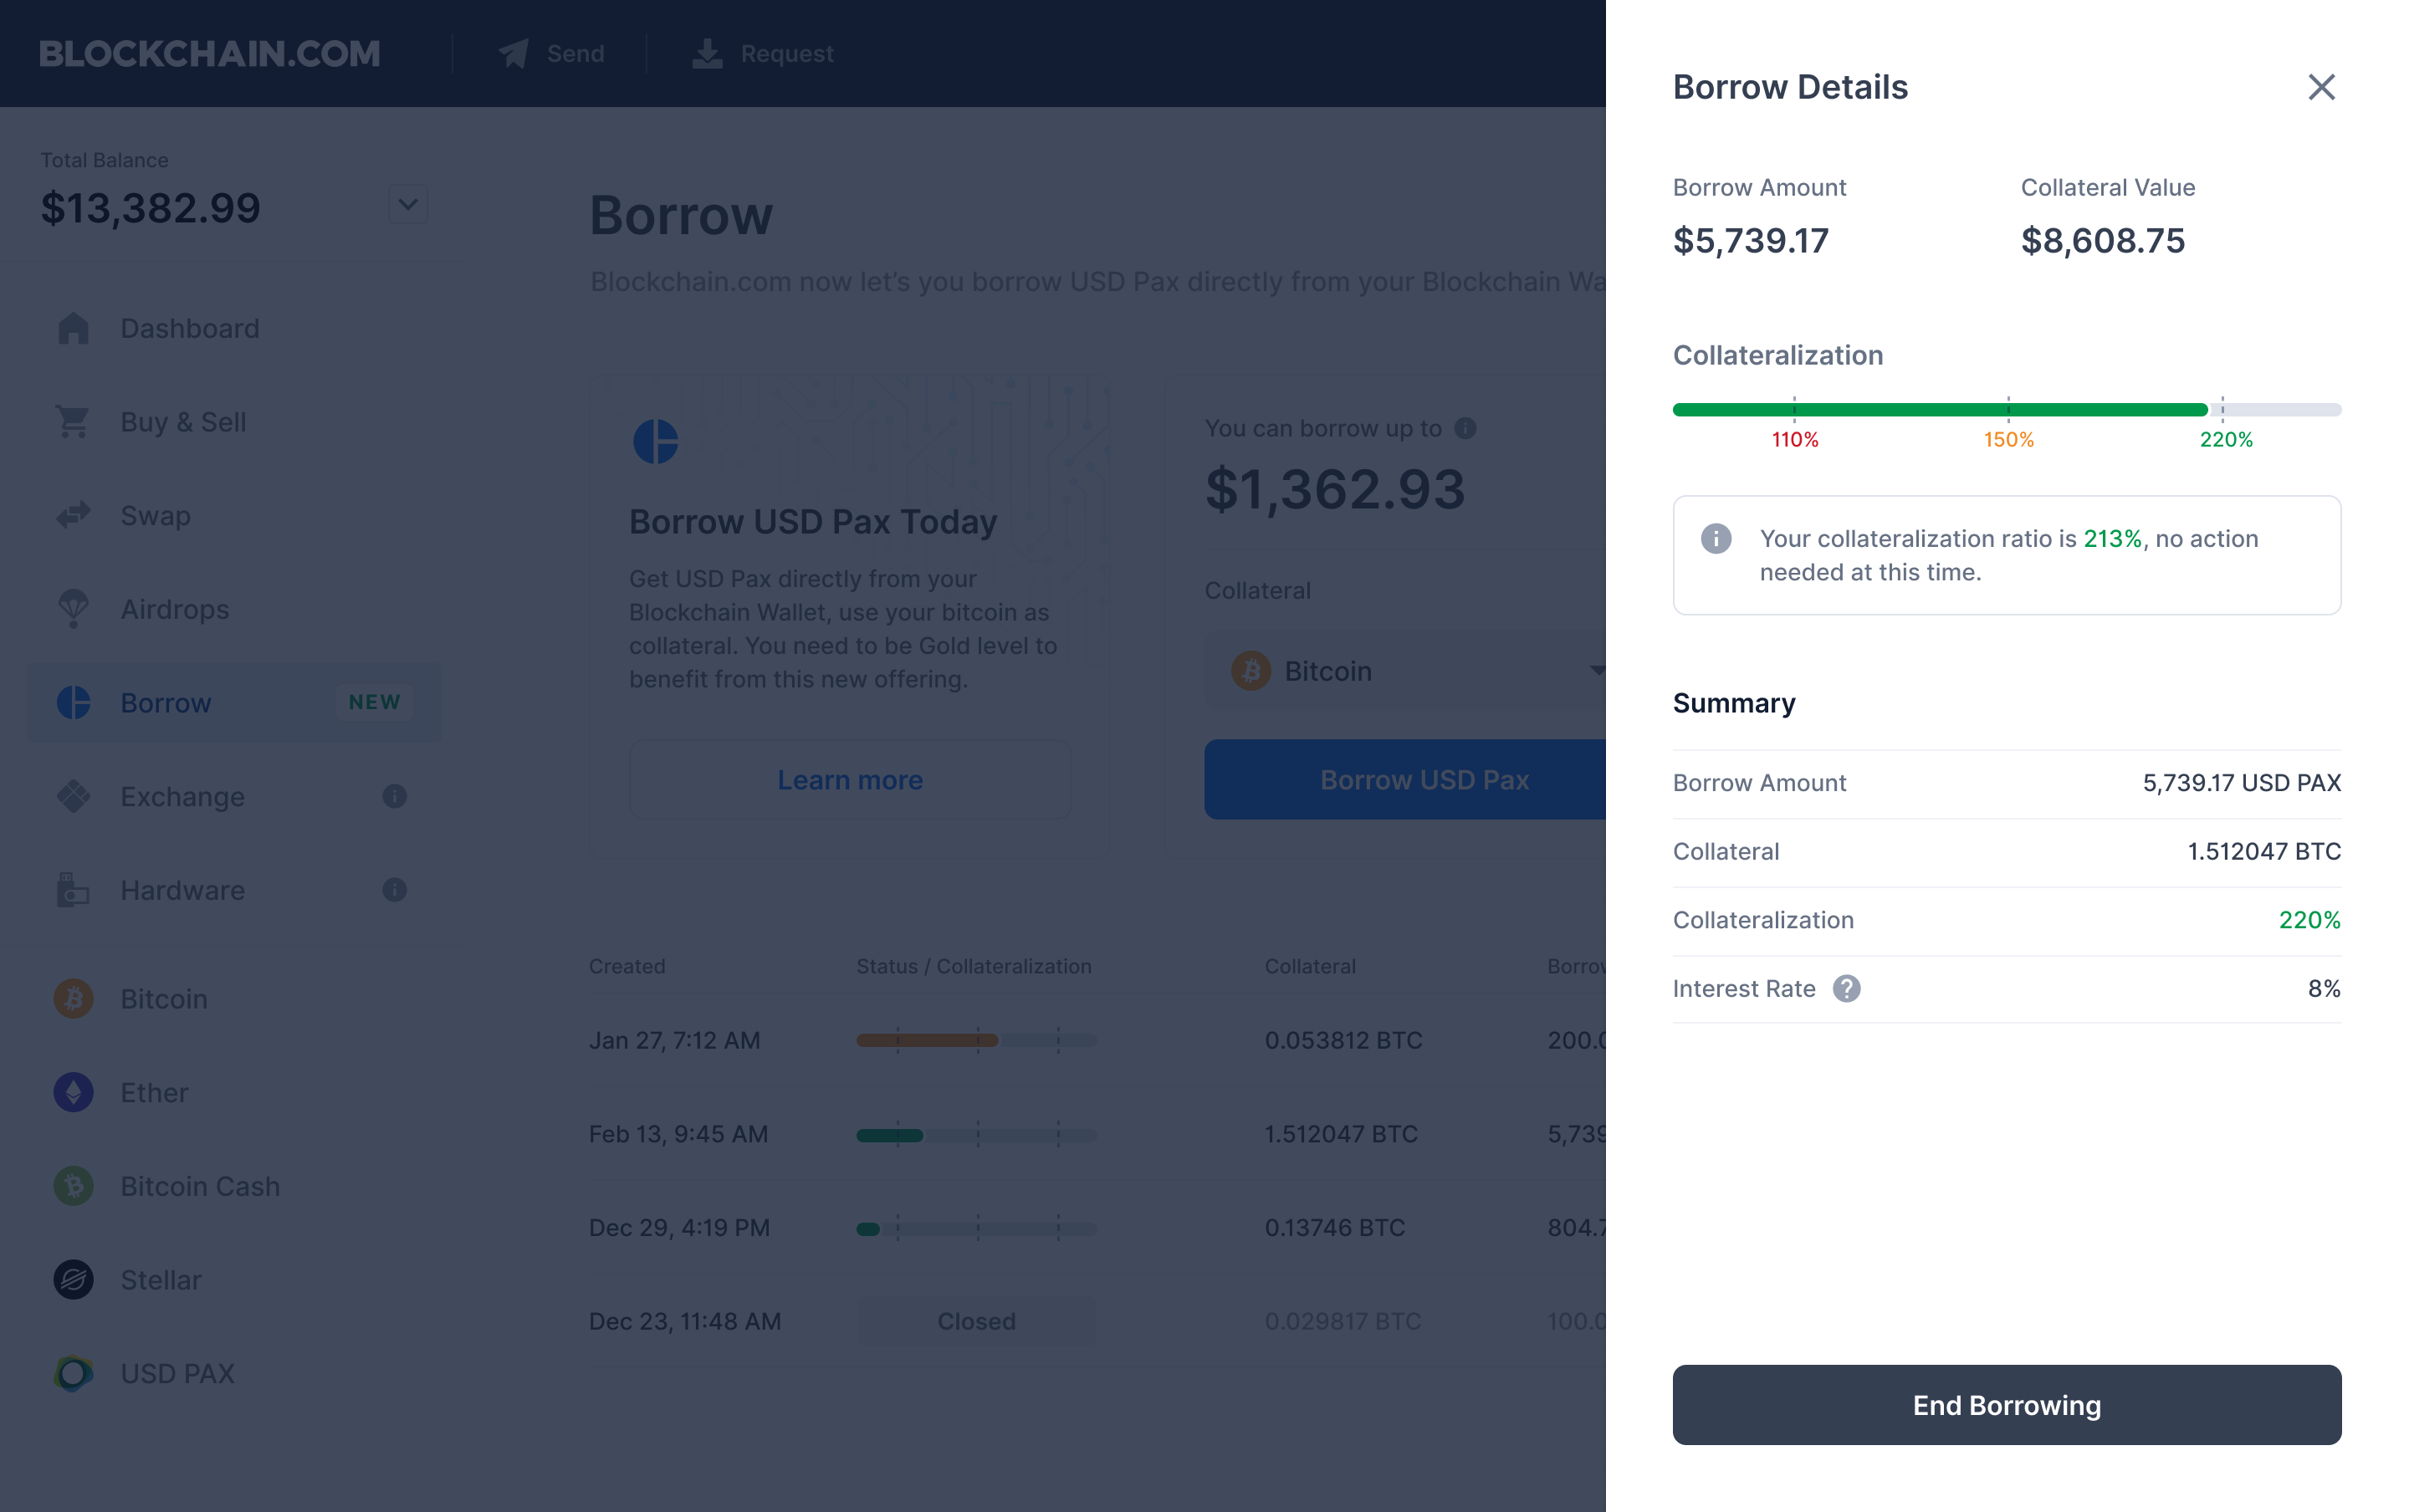 Blockchain (the company) lets you borrow USD PAX against collateral